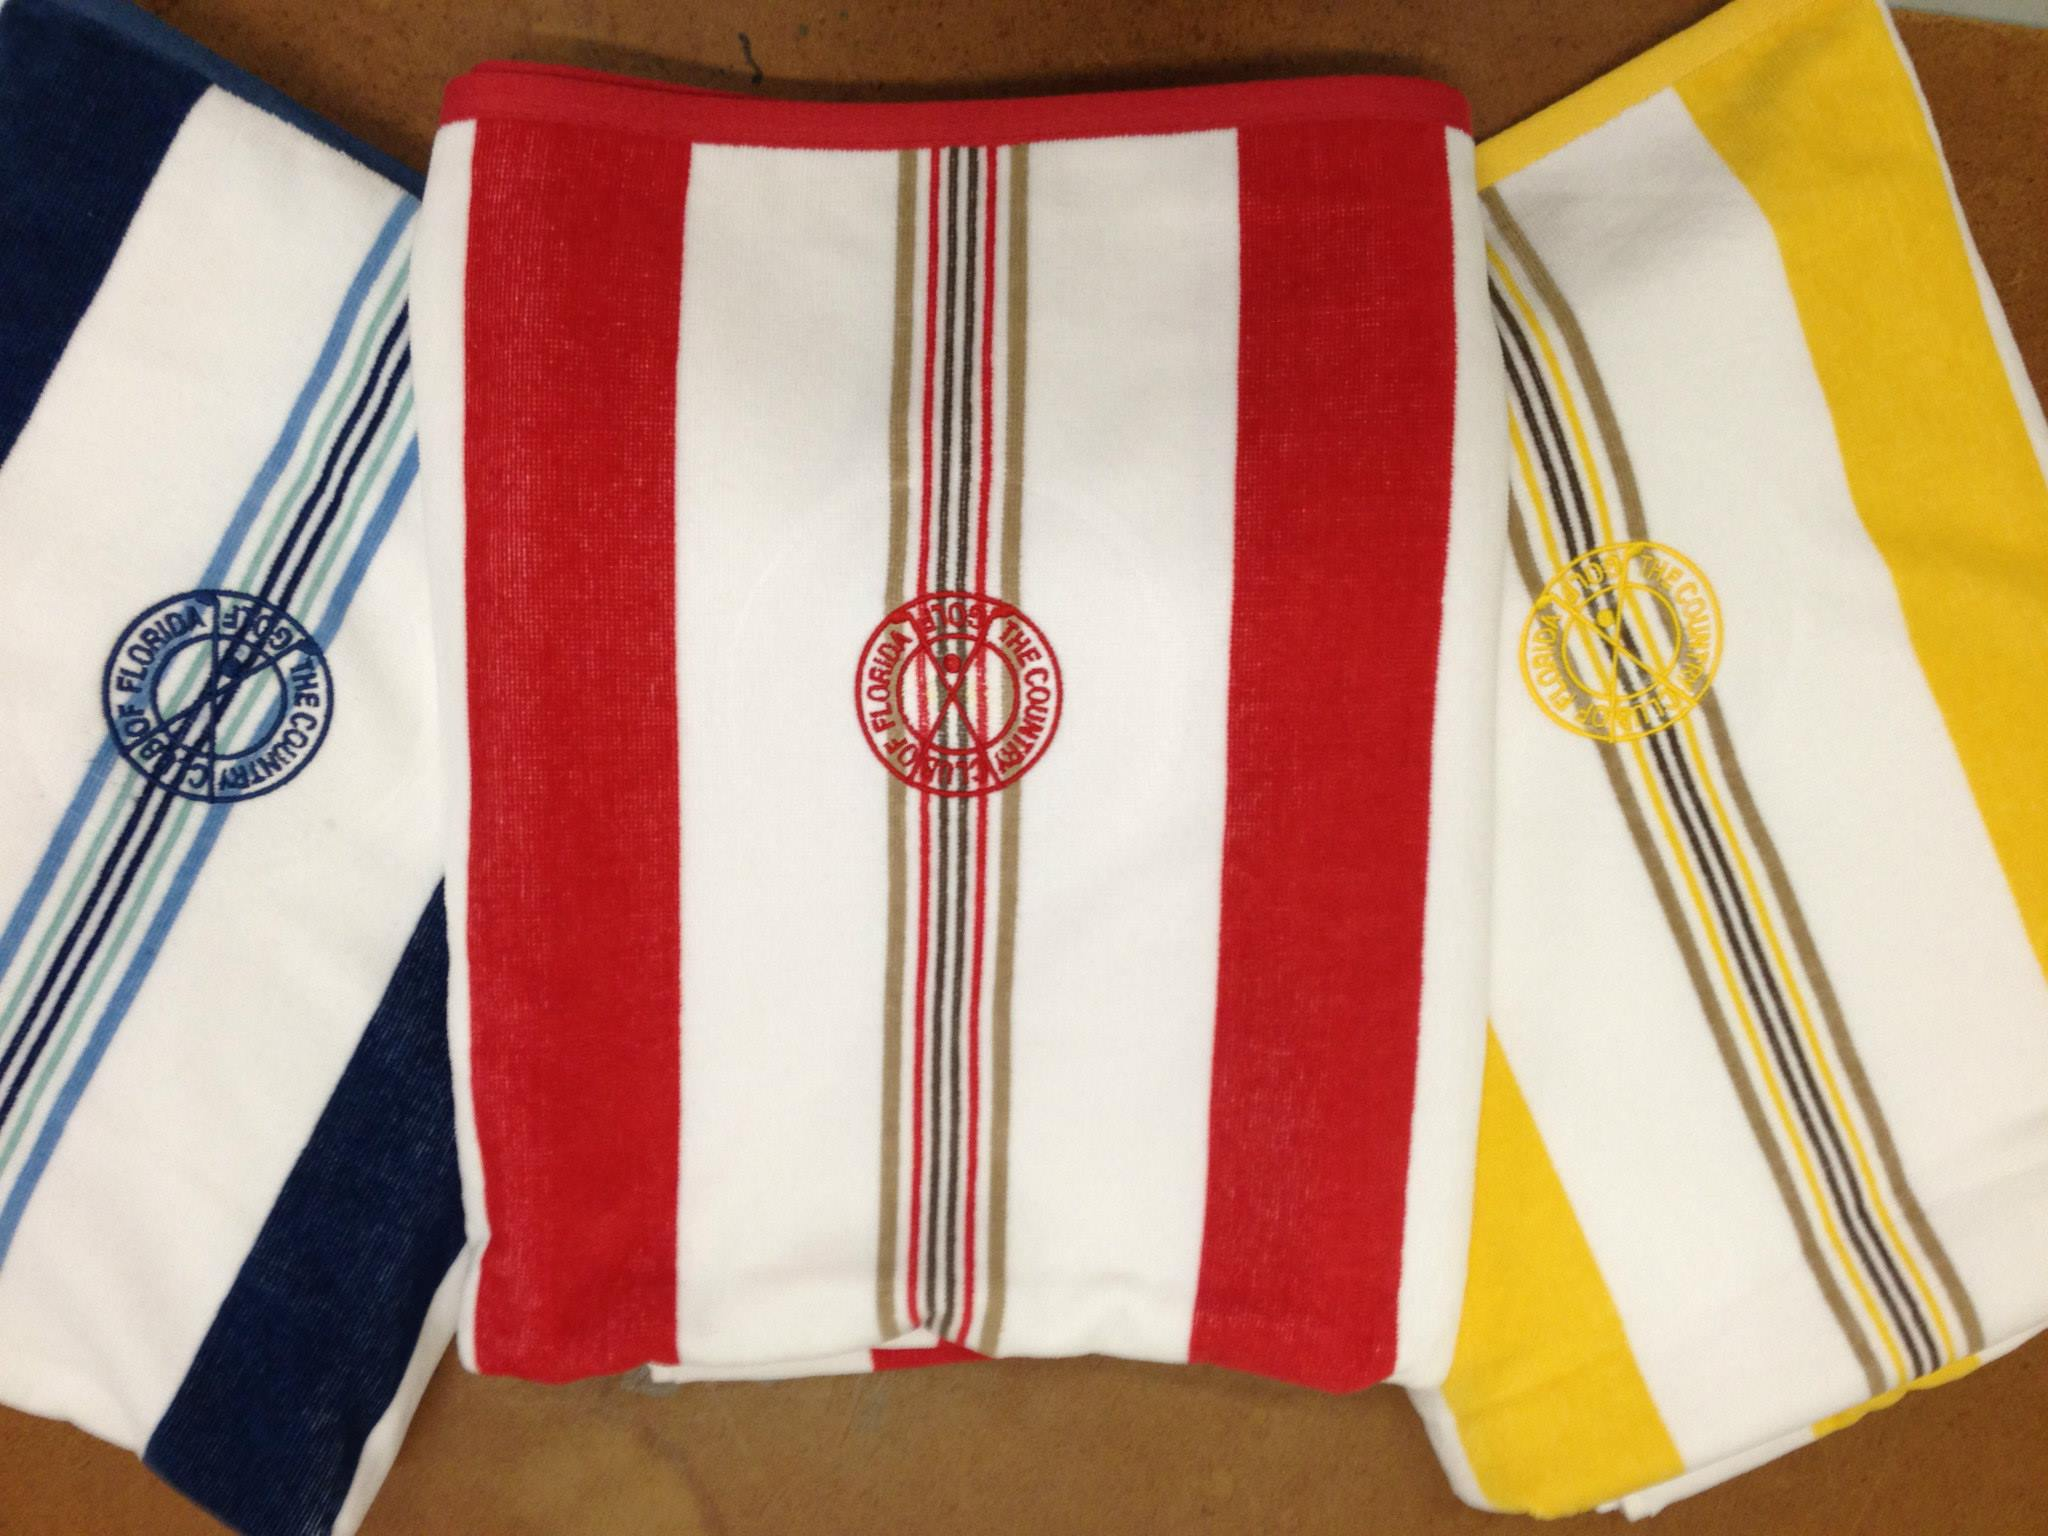 Monograms on colored towels